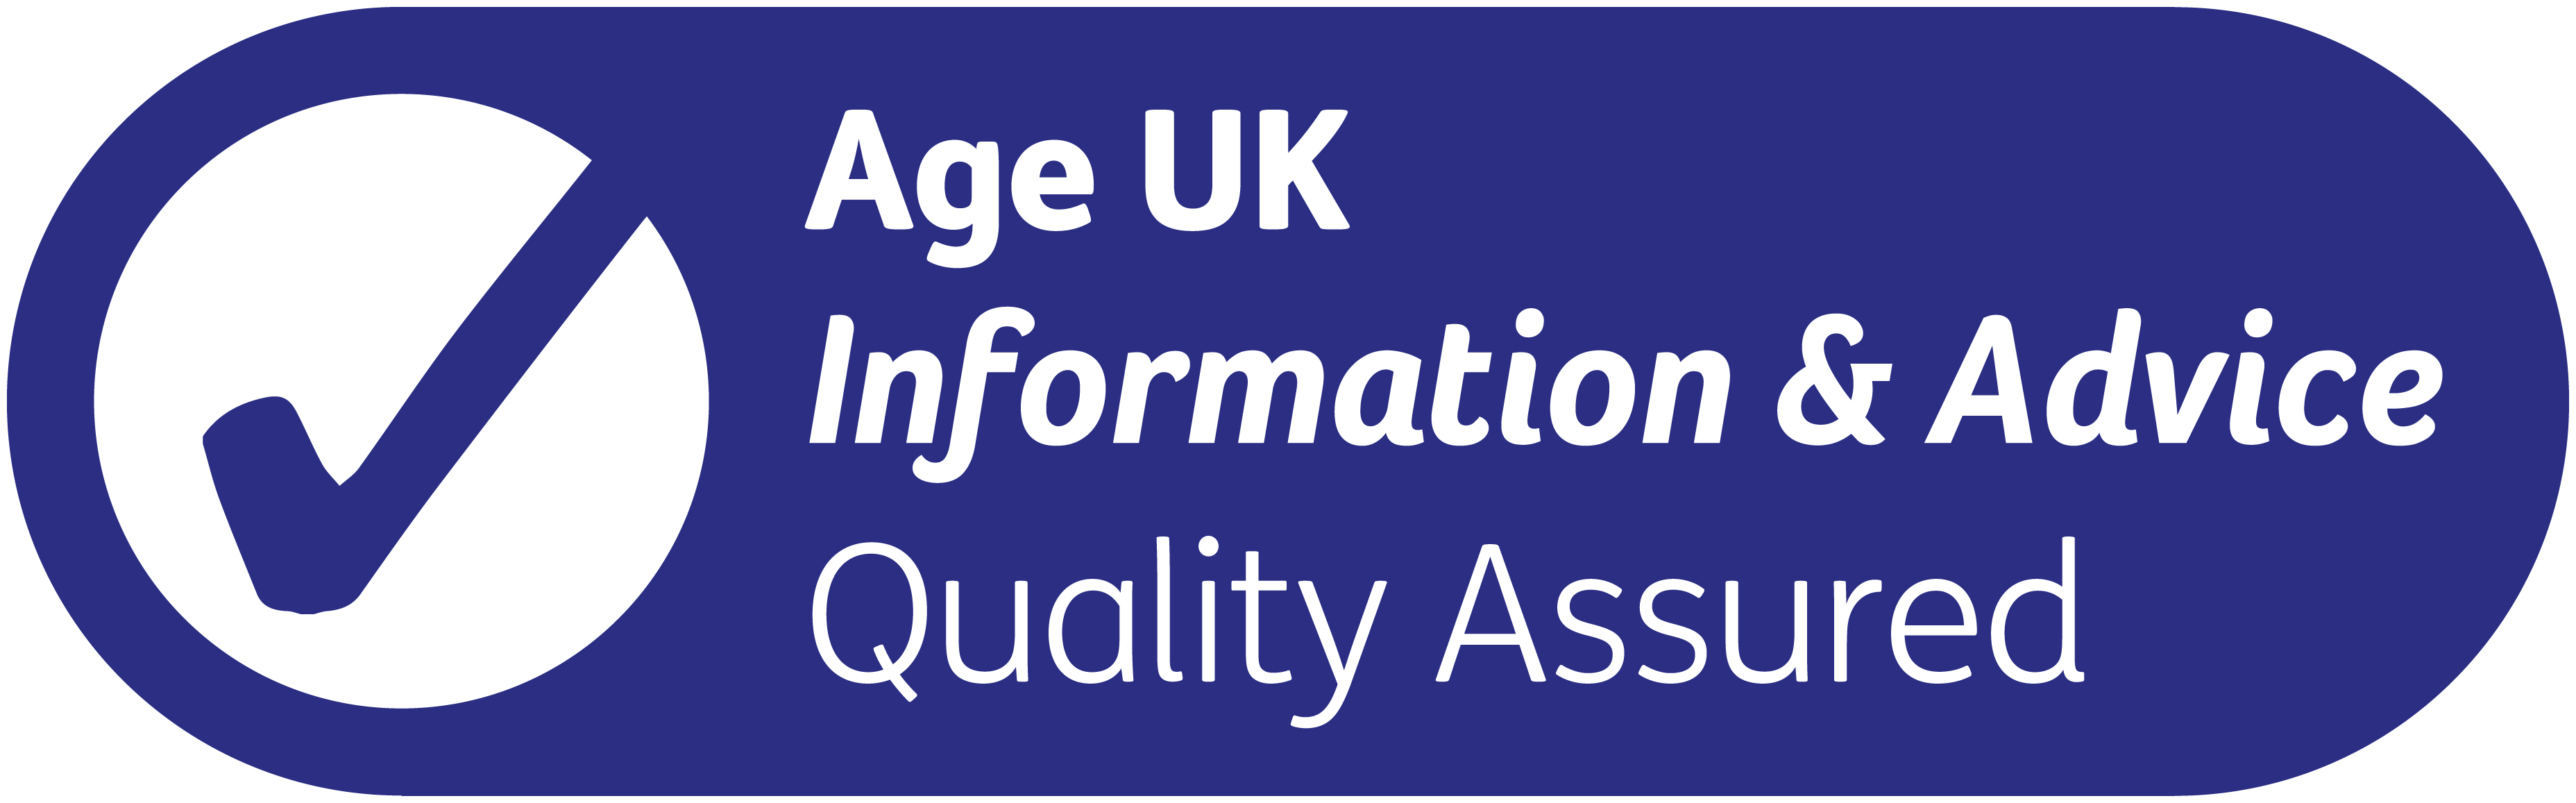 Age UK Information & Advice Quality Assured